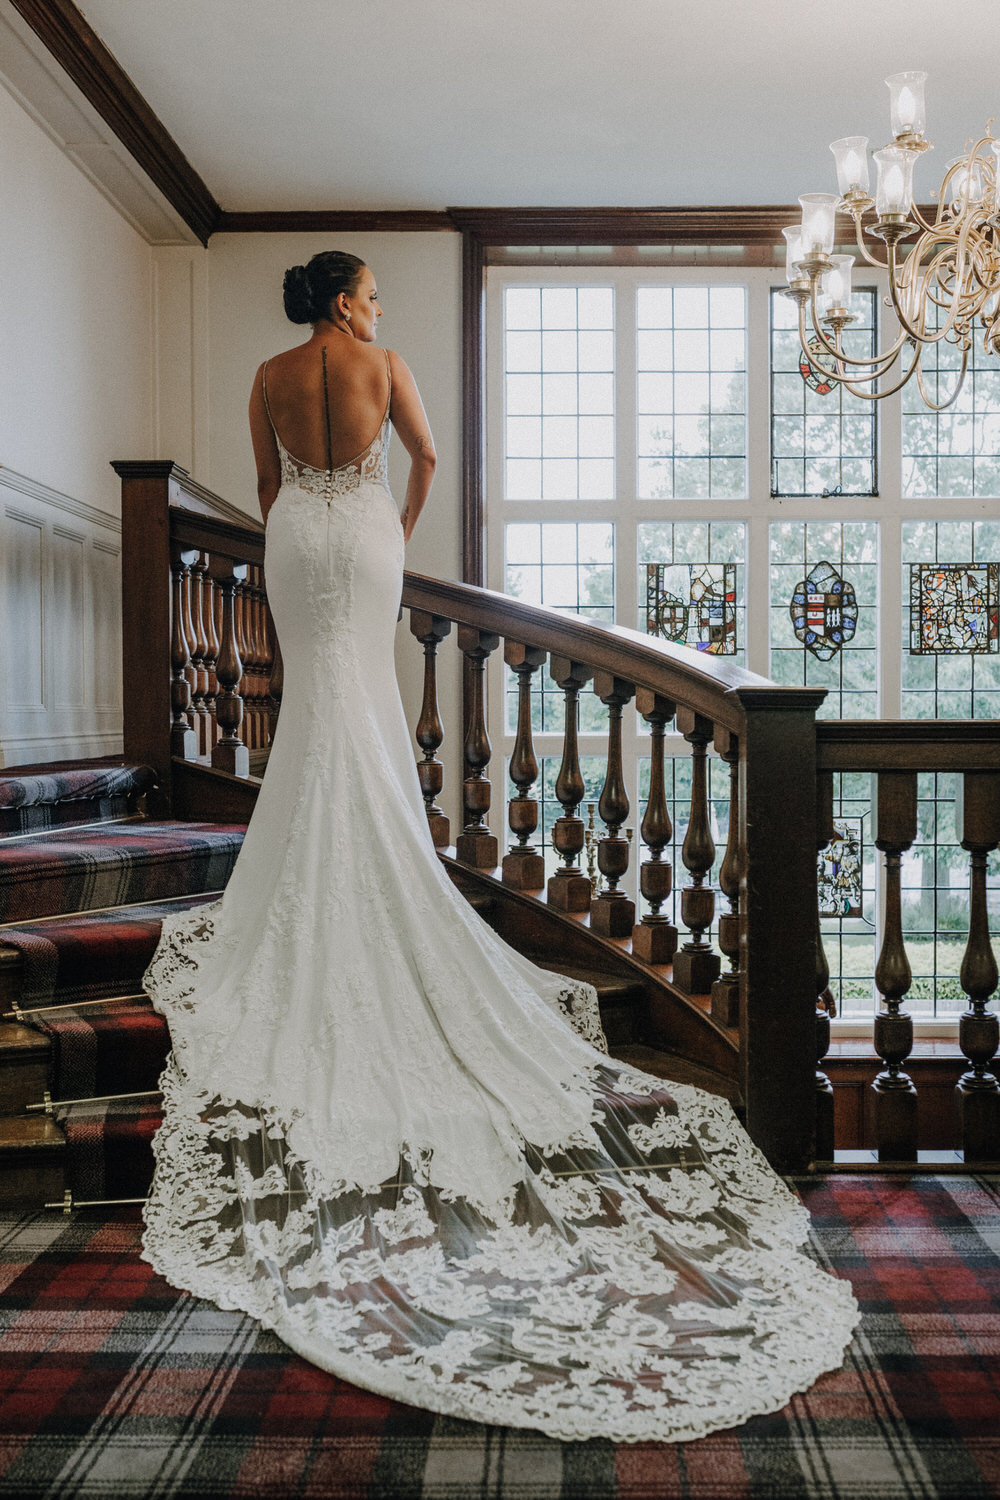 A bride stands on the stairs and poses in her wedding dress